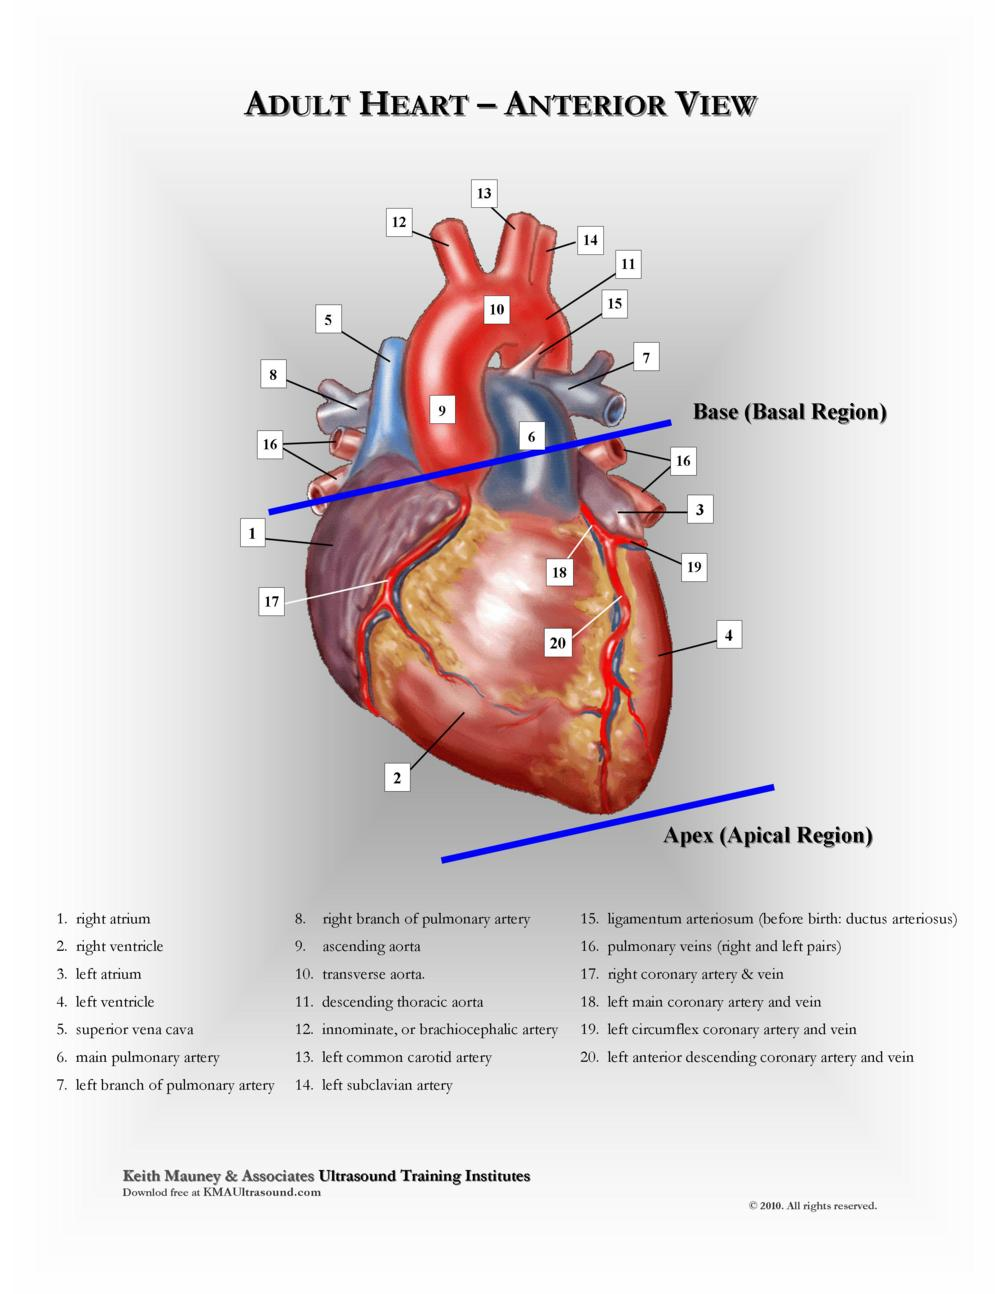 KMA Ultrasound Adult Heart - Anterior View